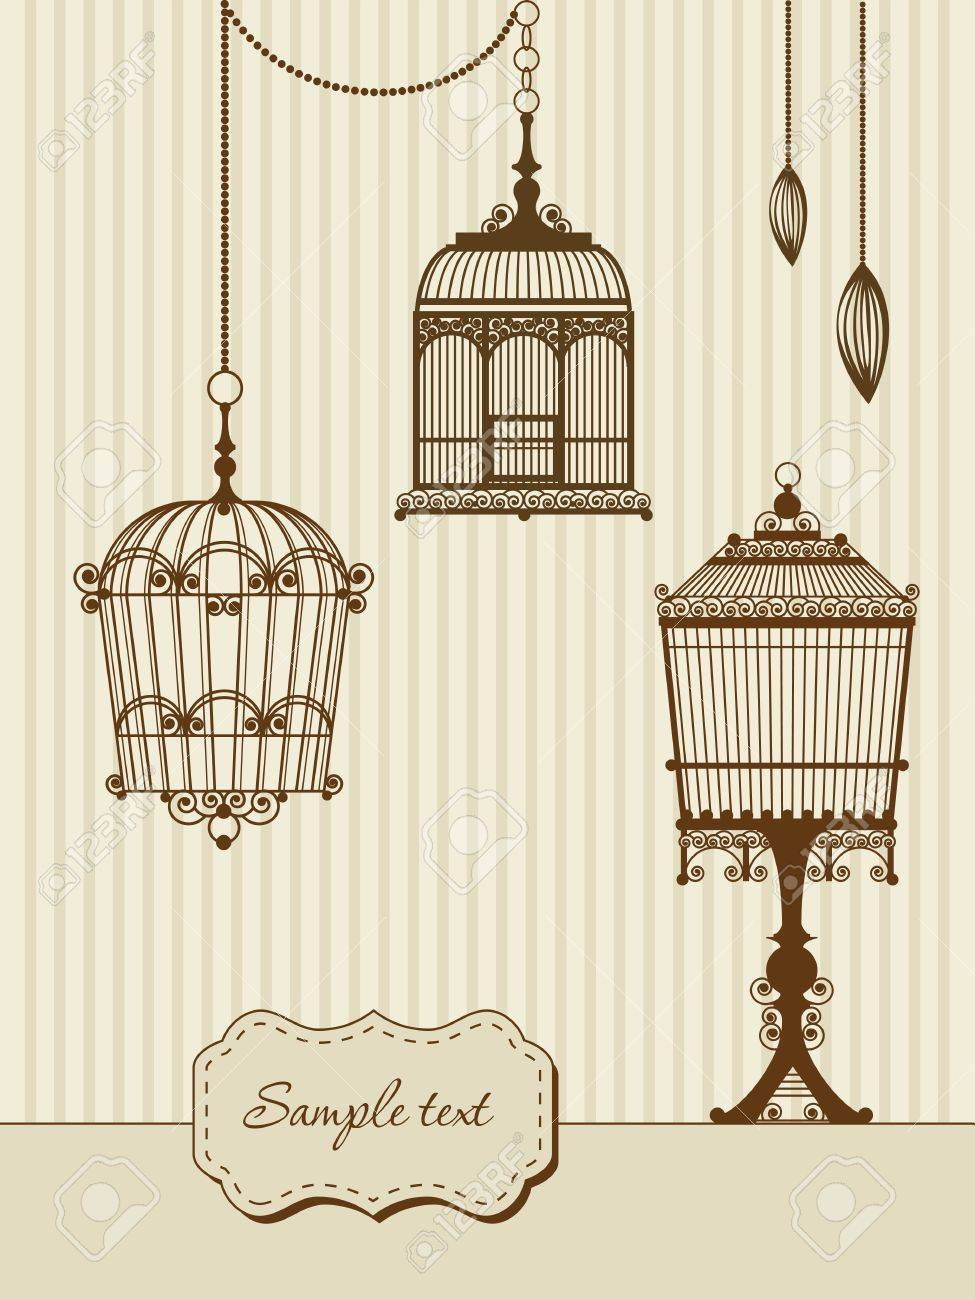 vintage card with birdcages Stock Vector - 13160529